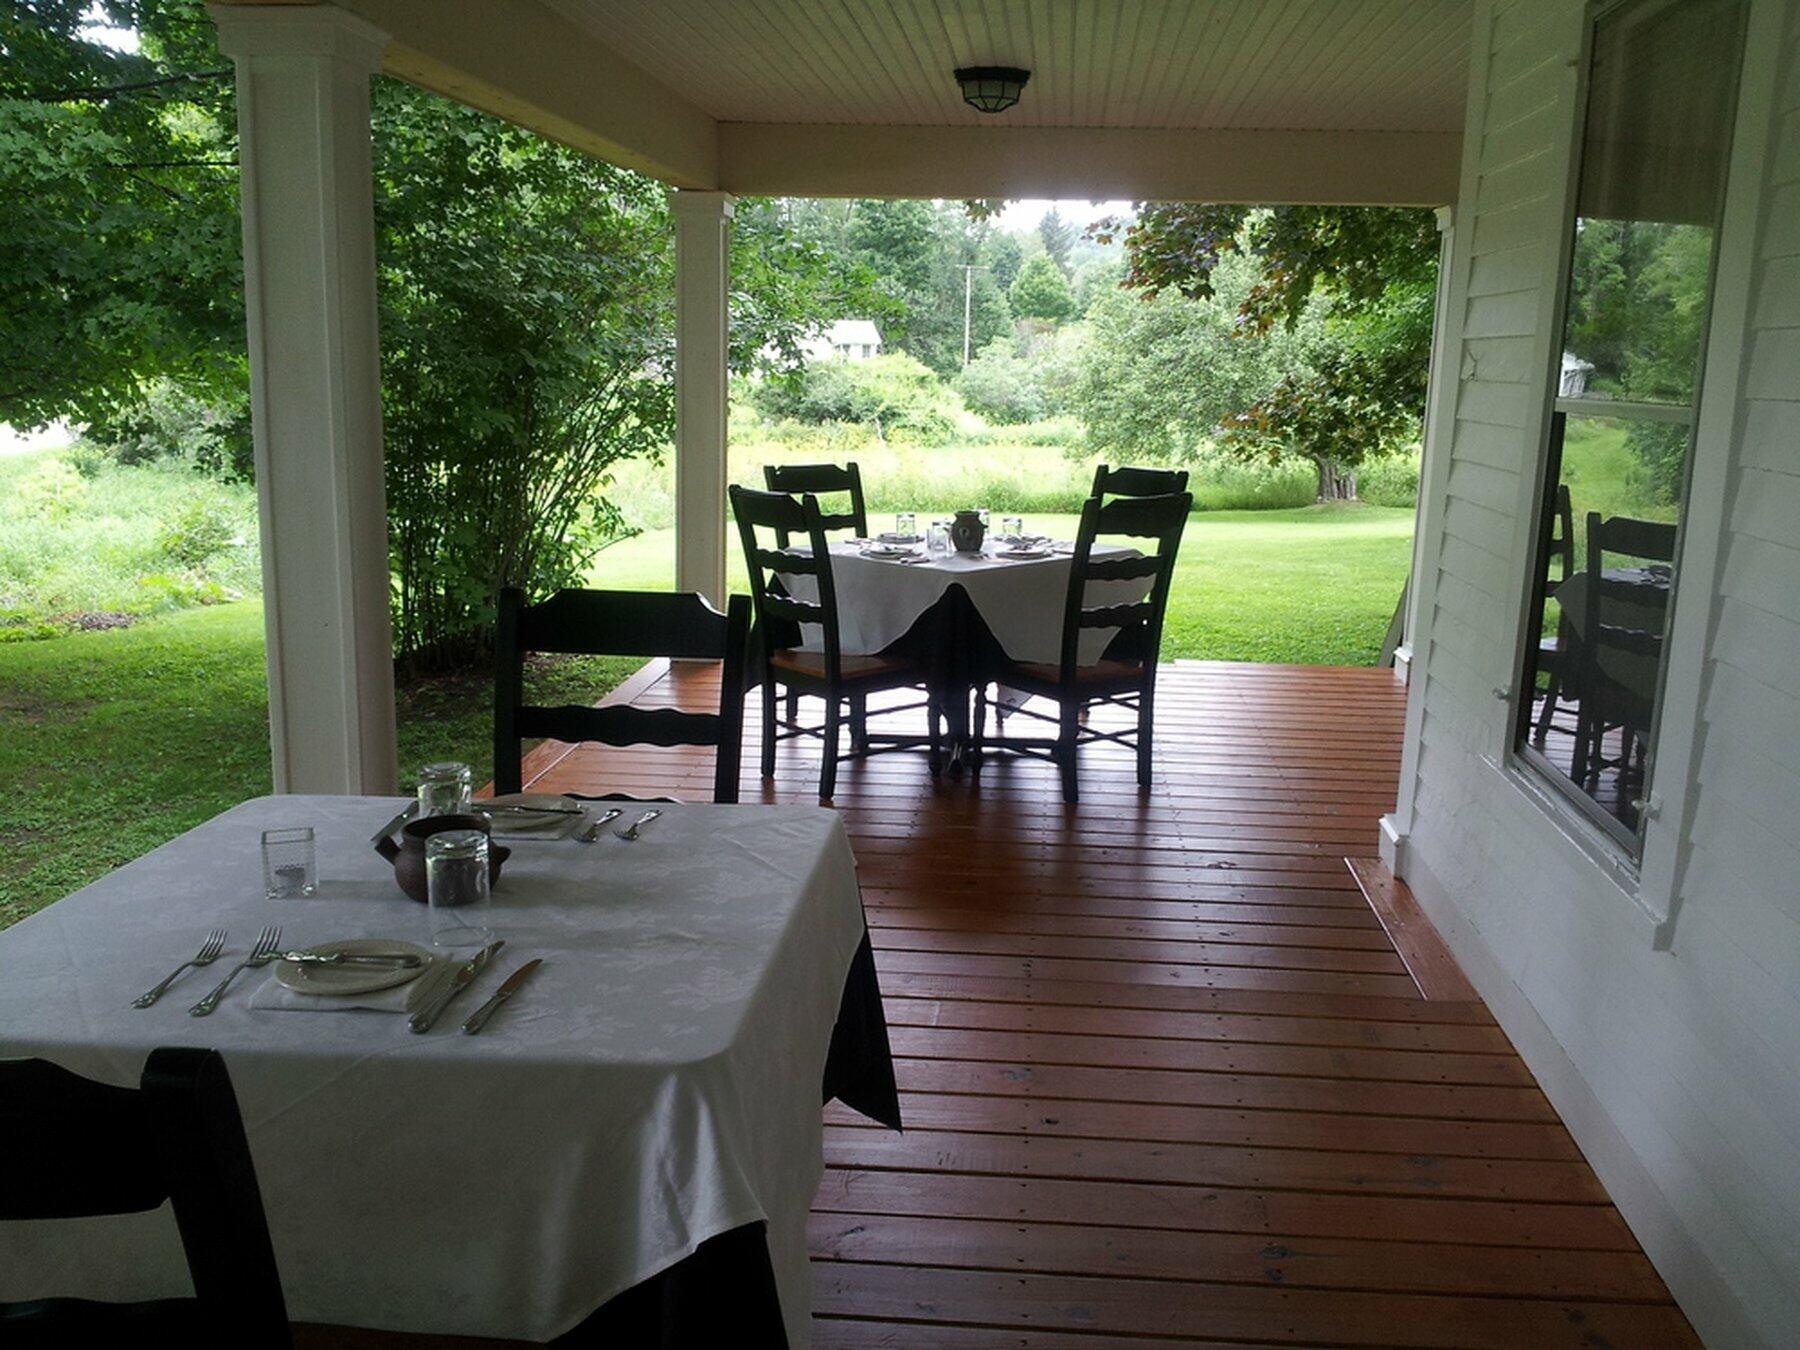 Dorset Inn porch dining